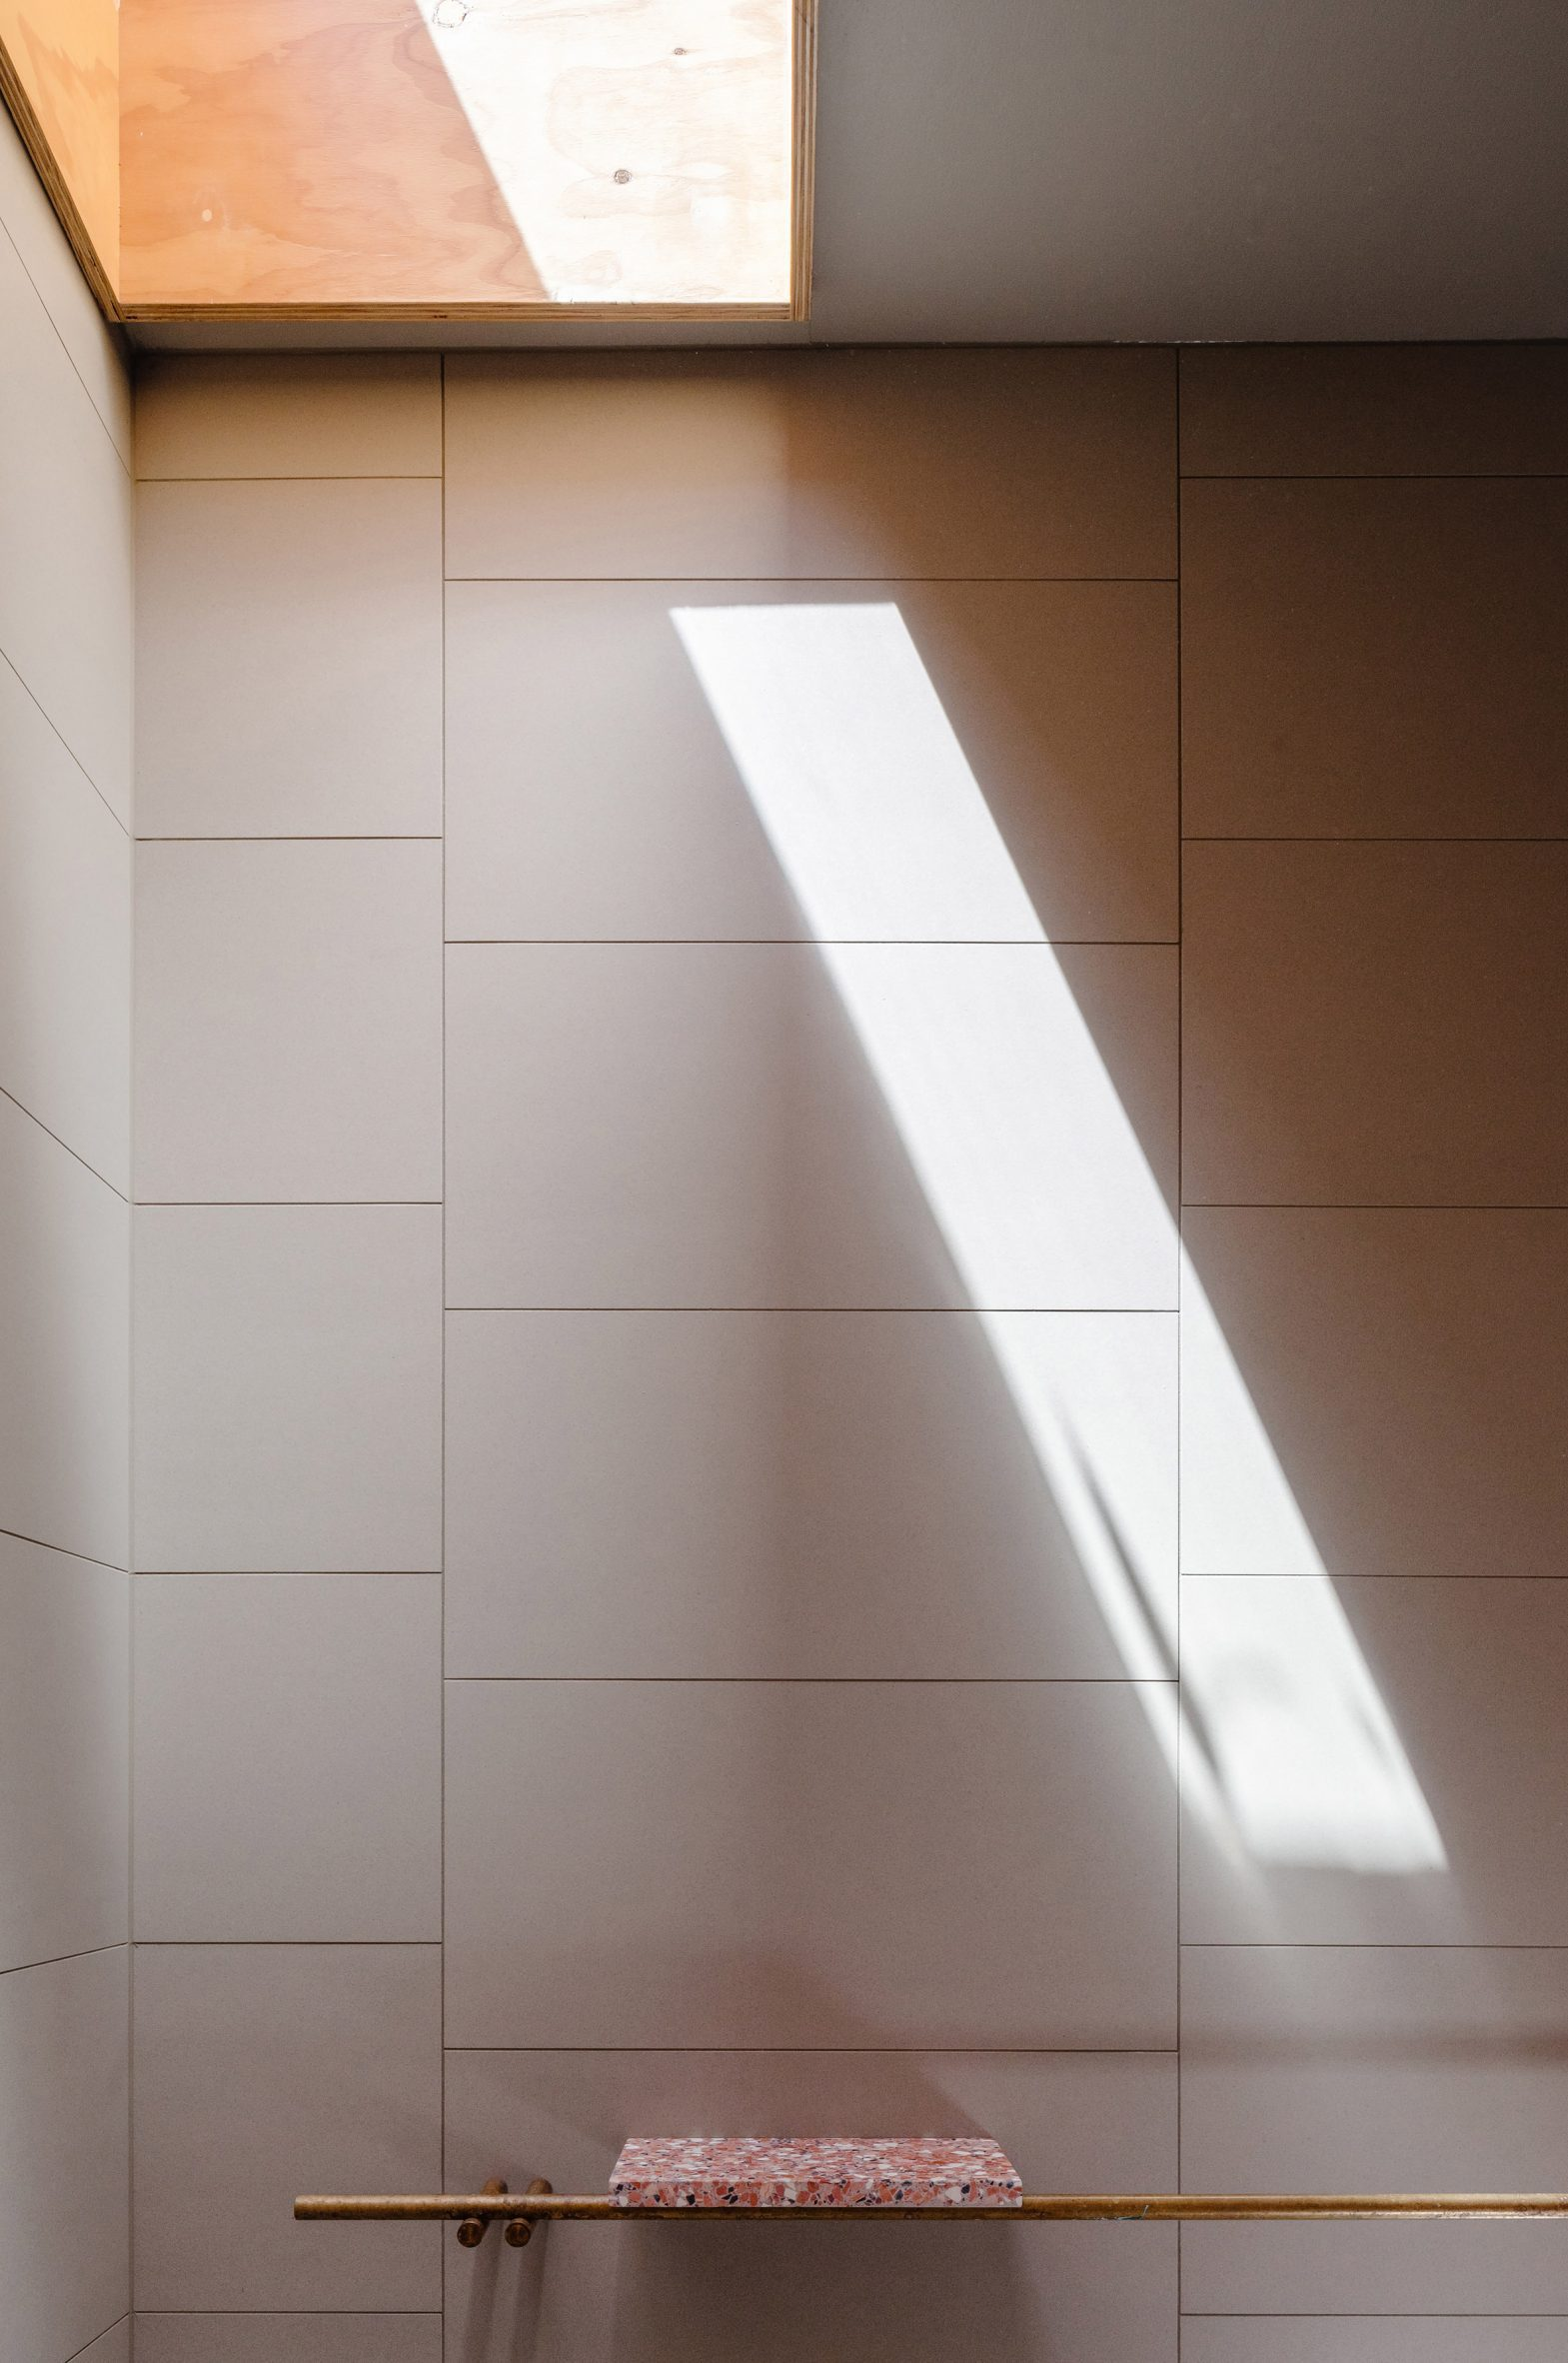 Minimal interiors in the shower room